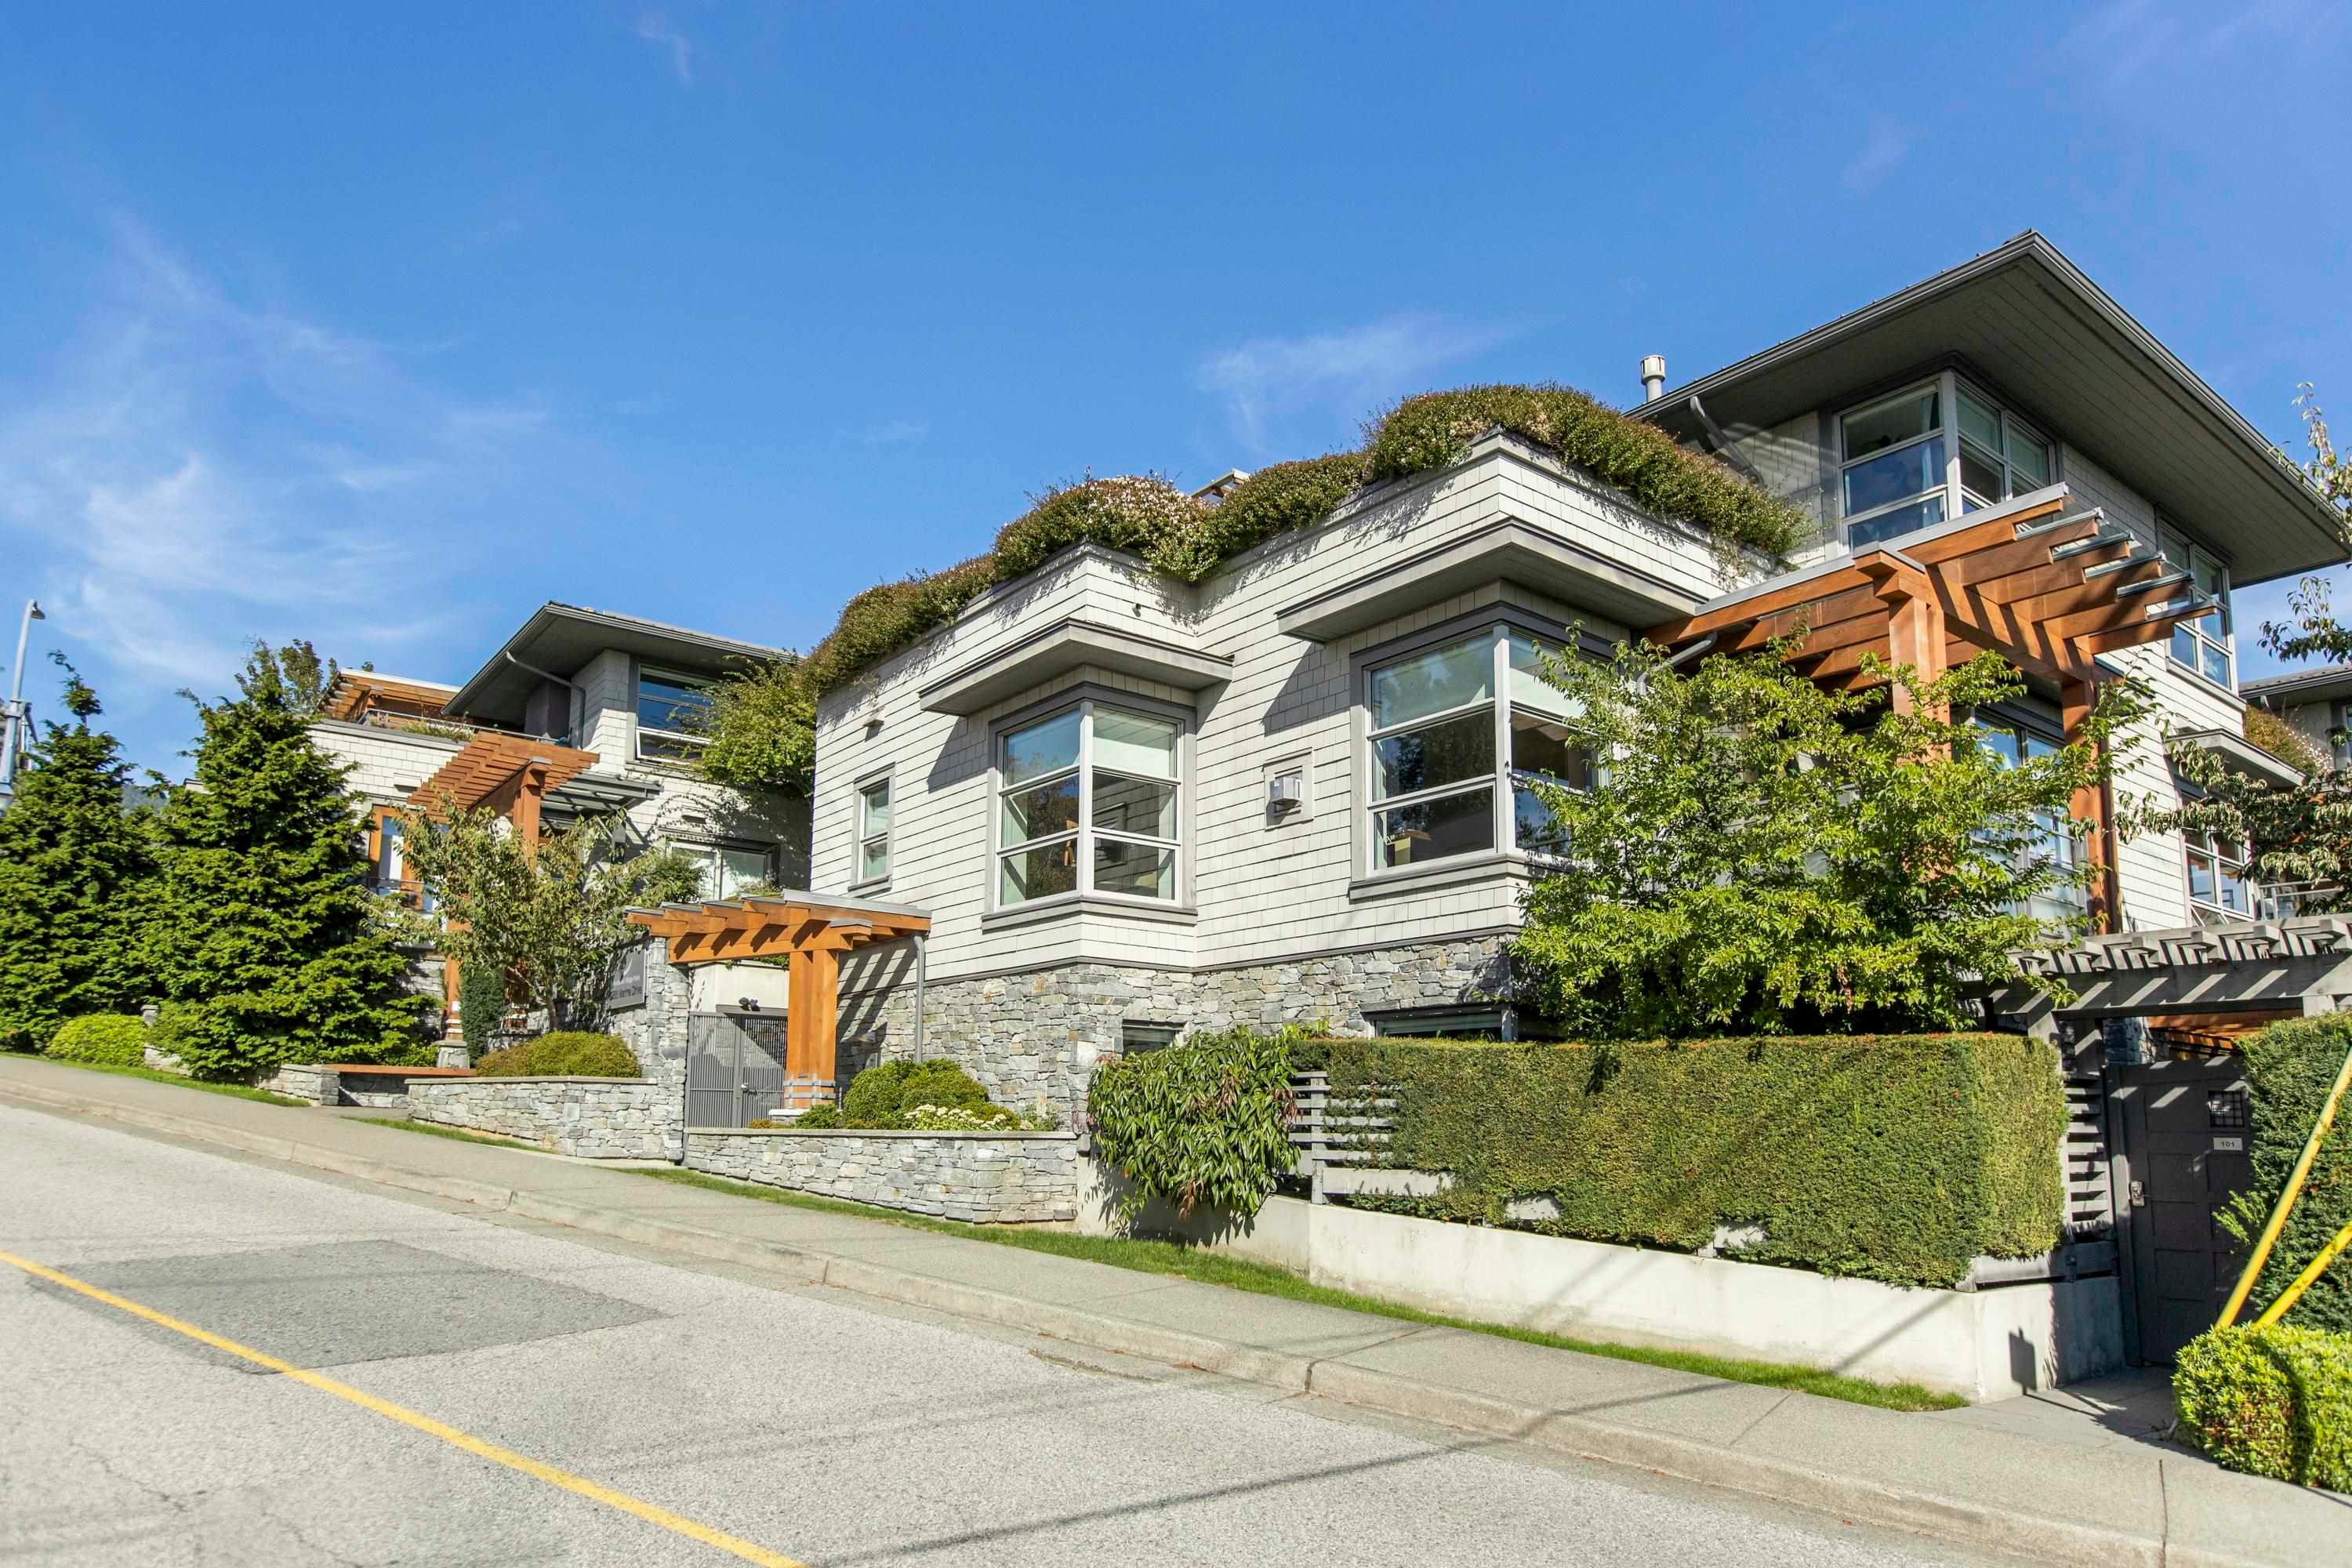 304 2388 MARINE DRIVE - Dundarave Apartment/Condo for sale, 2 Bedrooms (R2616698) - #1